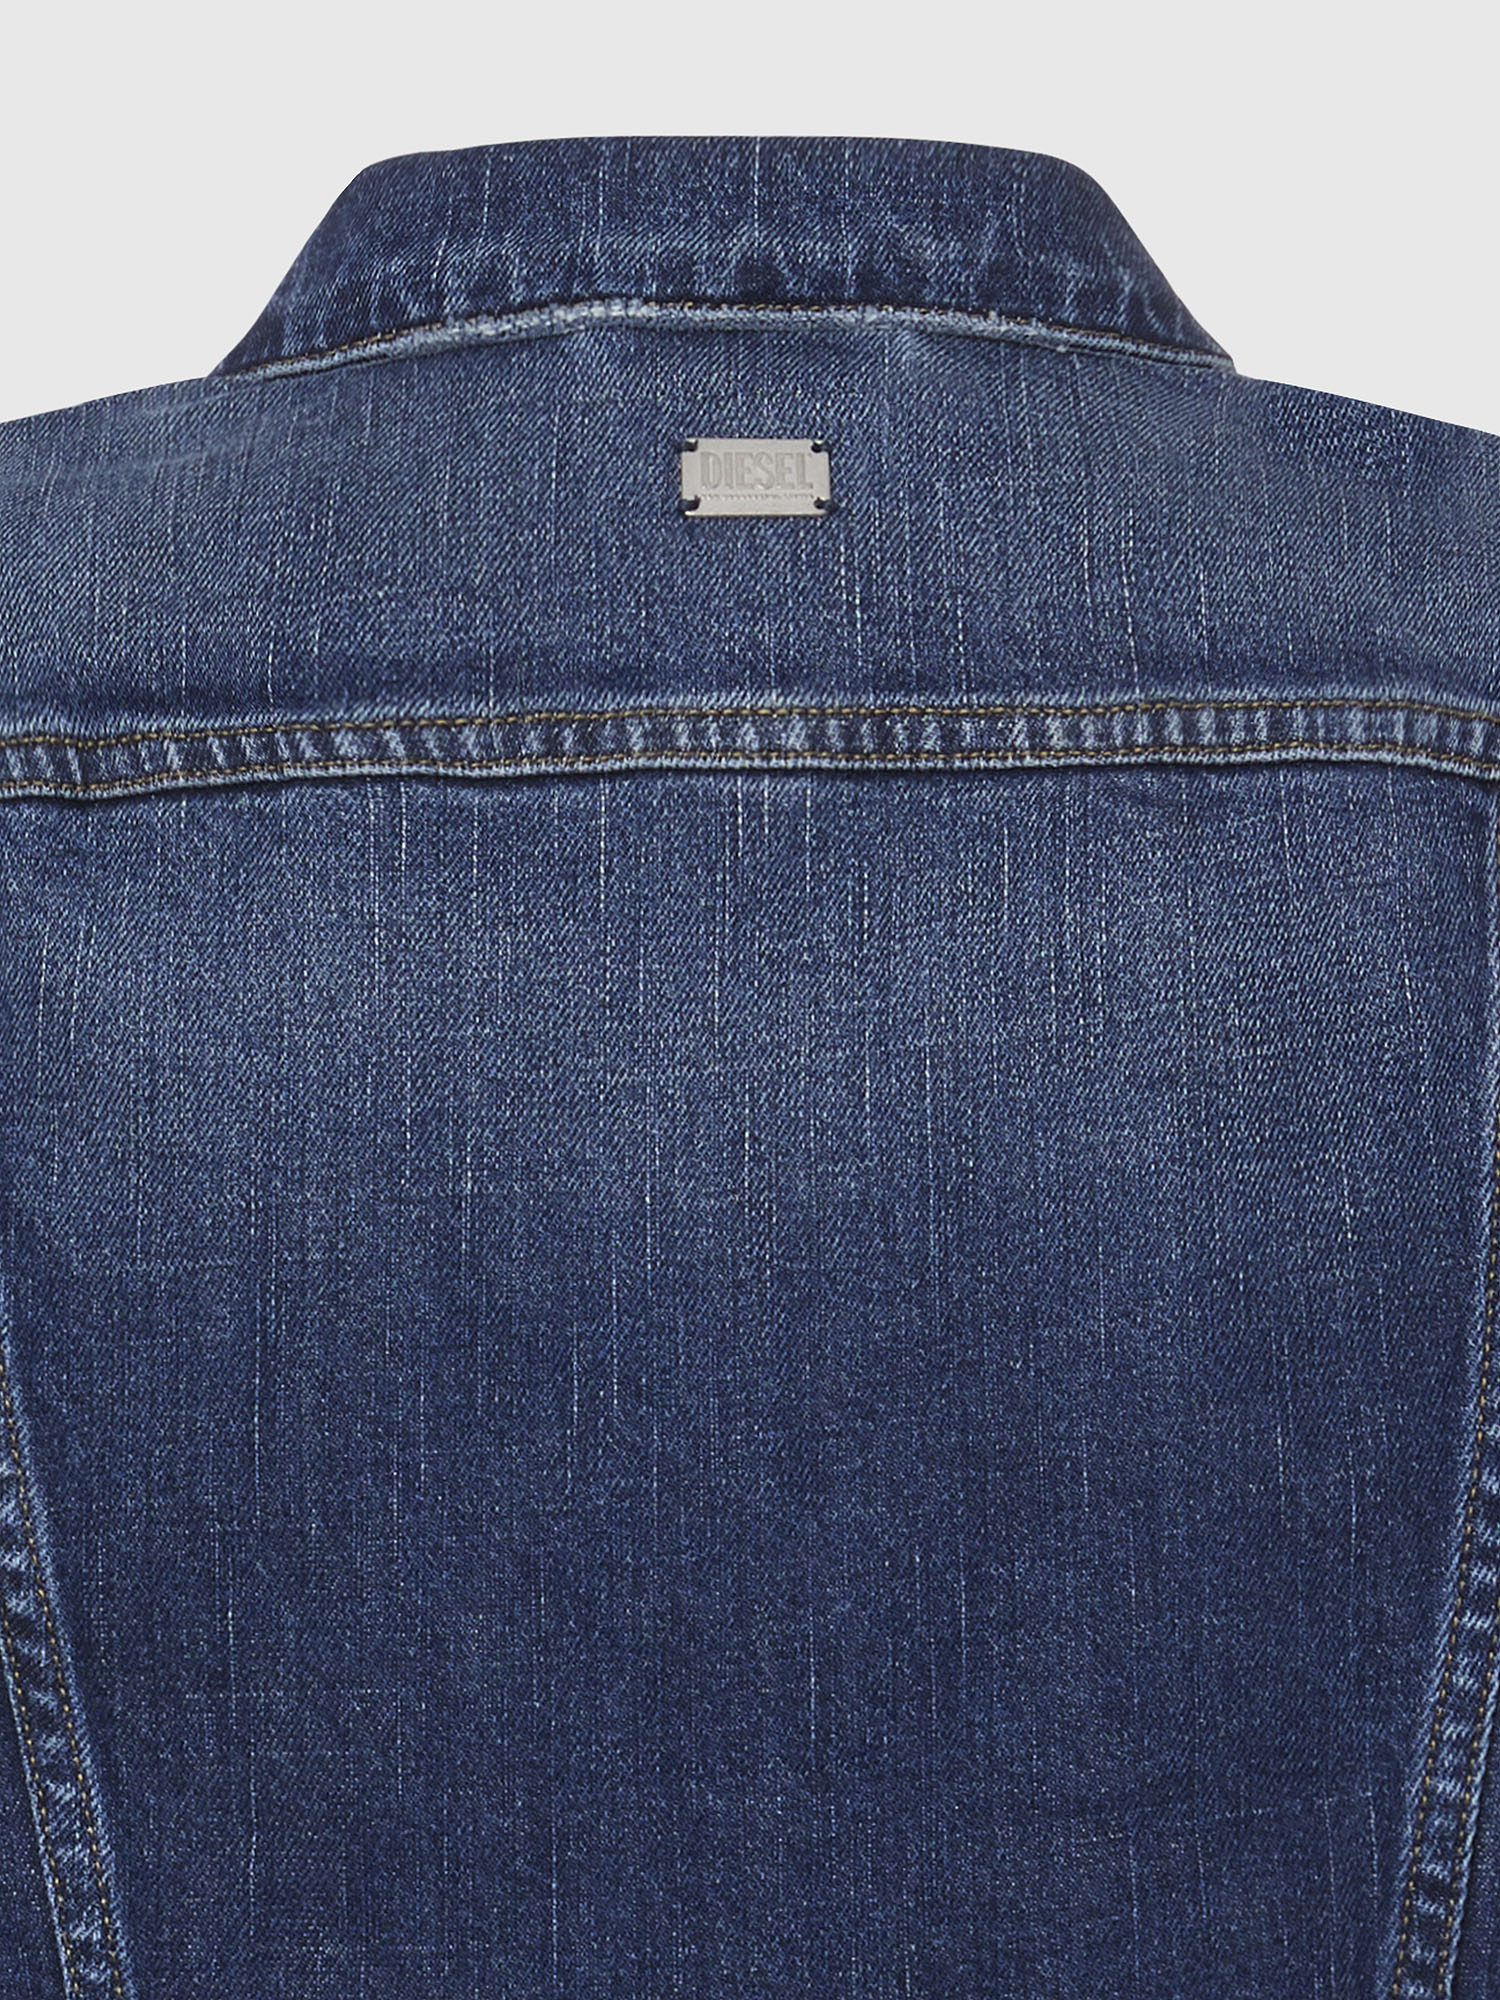 Diesel - DE-LIMMY,  - Denim Jackets - Image 4